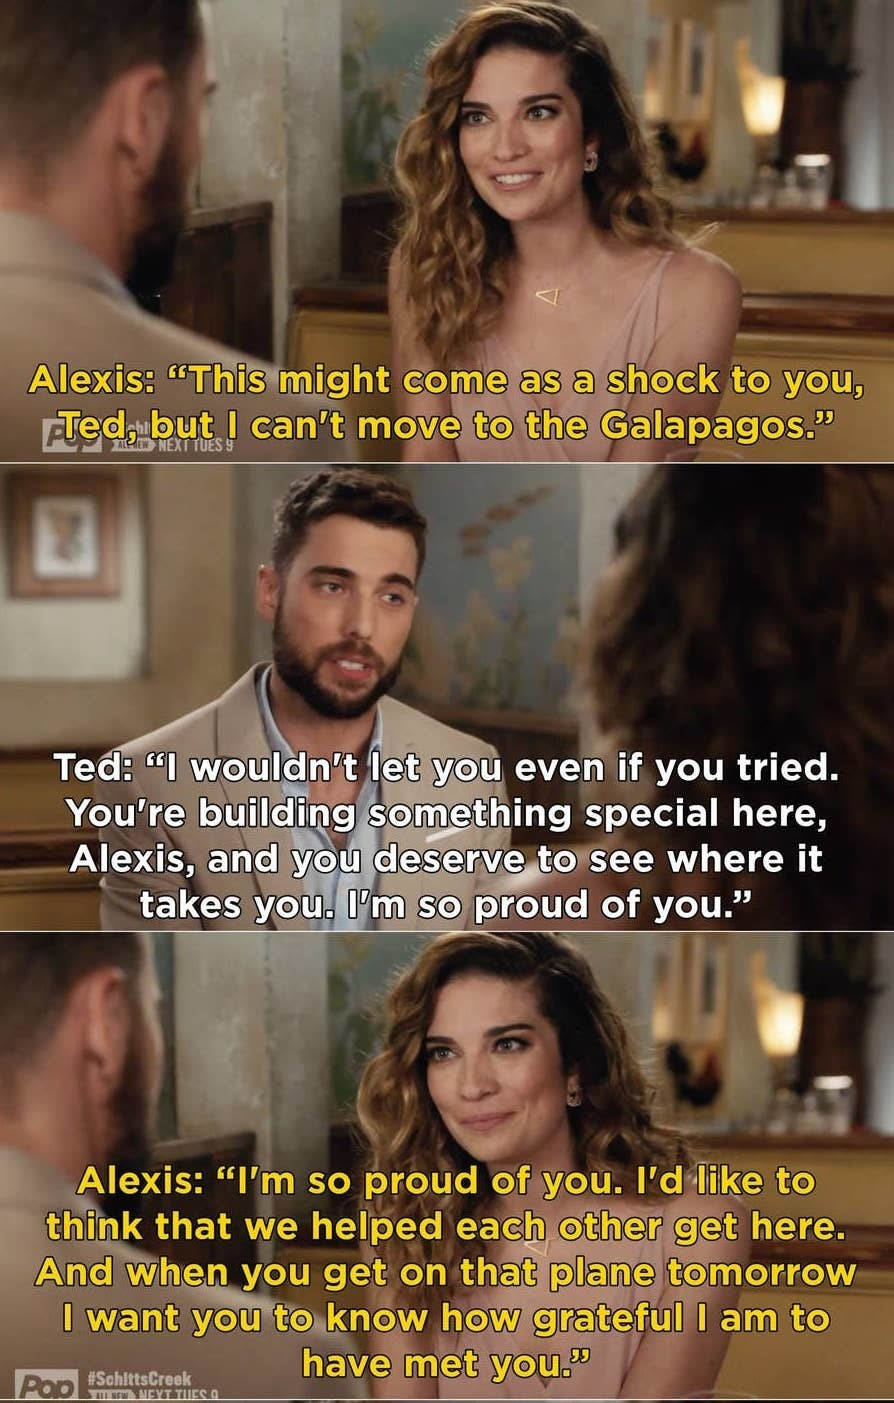 """Alexis tells Ted she can't go to the Galapagos with him but she's so proud of him and thankful to have met him, """"I'd like to think that we helped each other get here"""""""